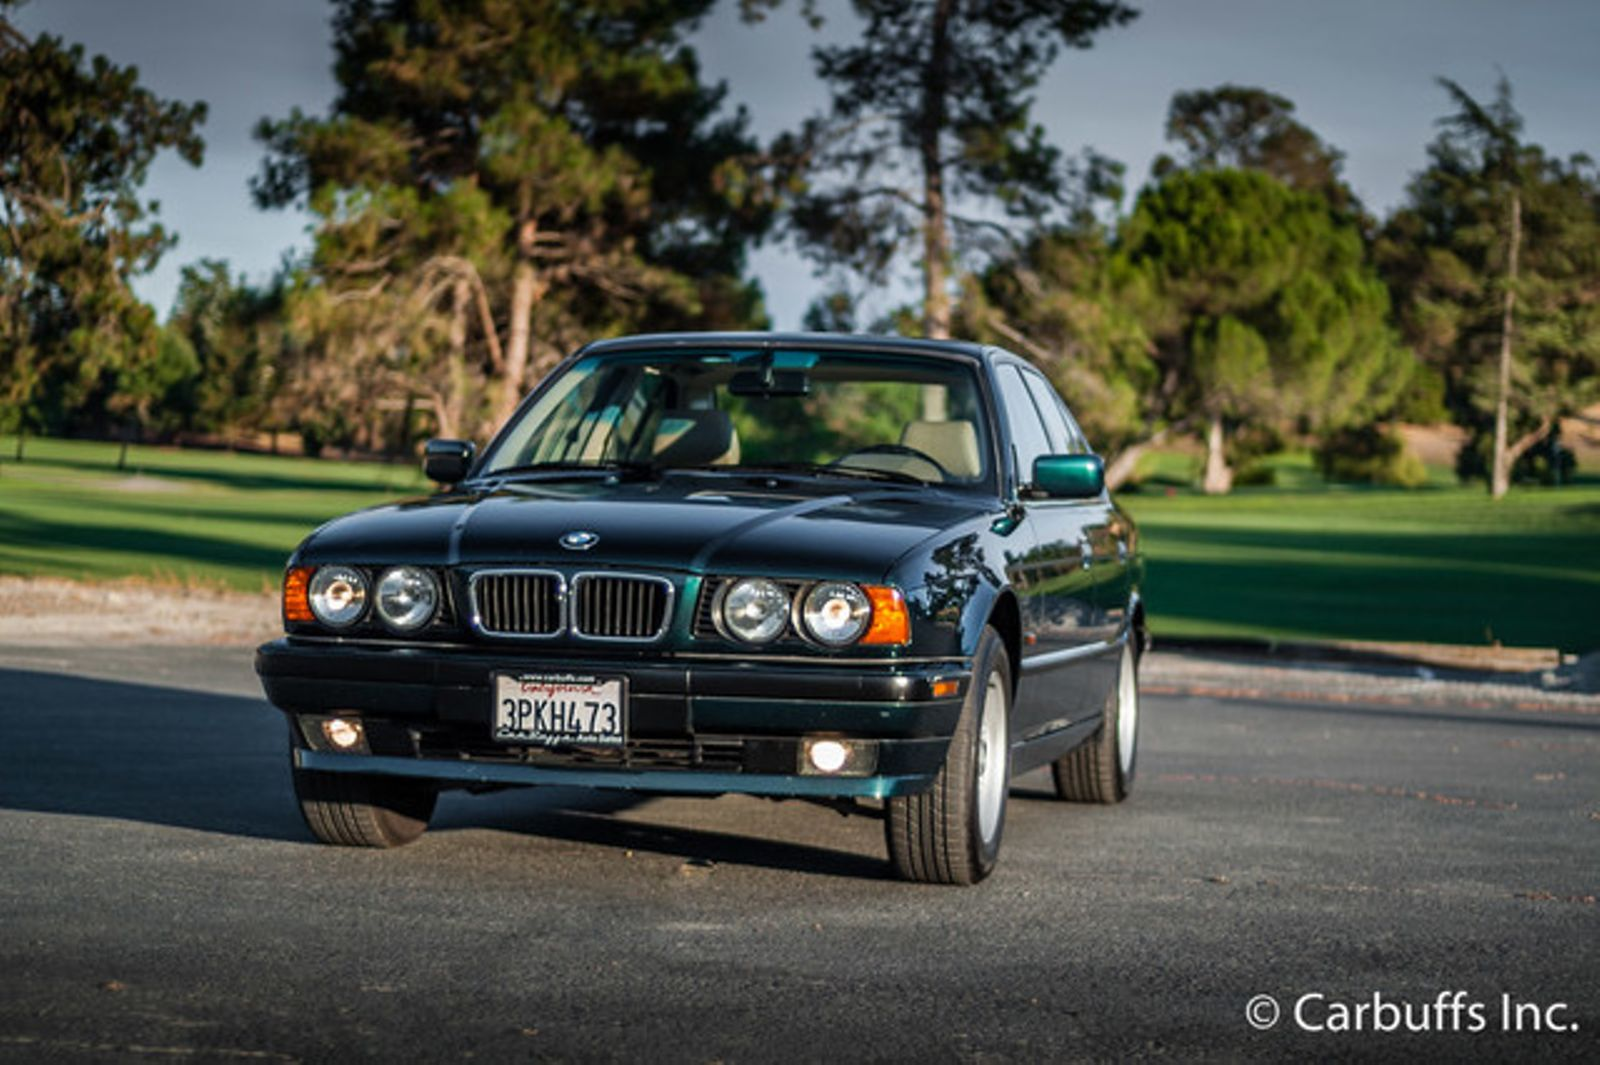 1995 bmw 5 series 525i concord ca carbuffs concord ca 94520 1995 bmw 5 series 525i concord ca carbuffs in concord ca publicscrutiny Images